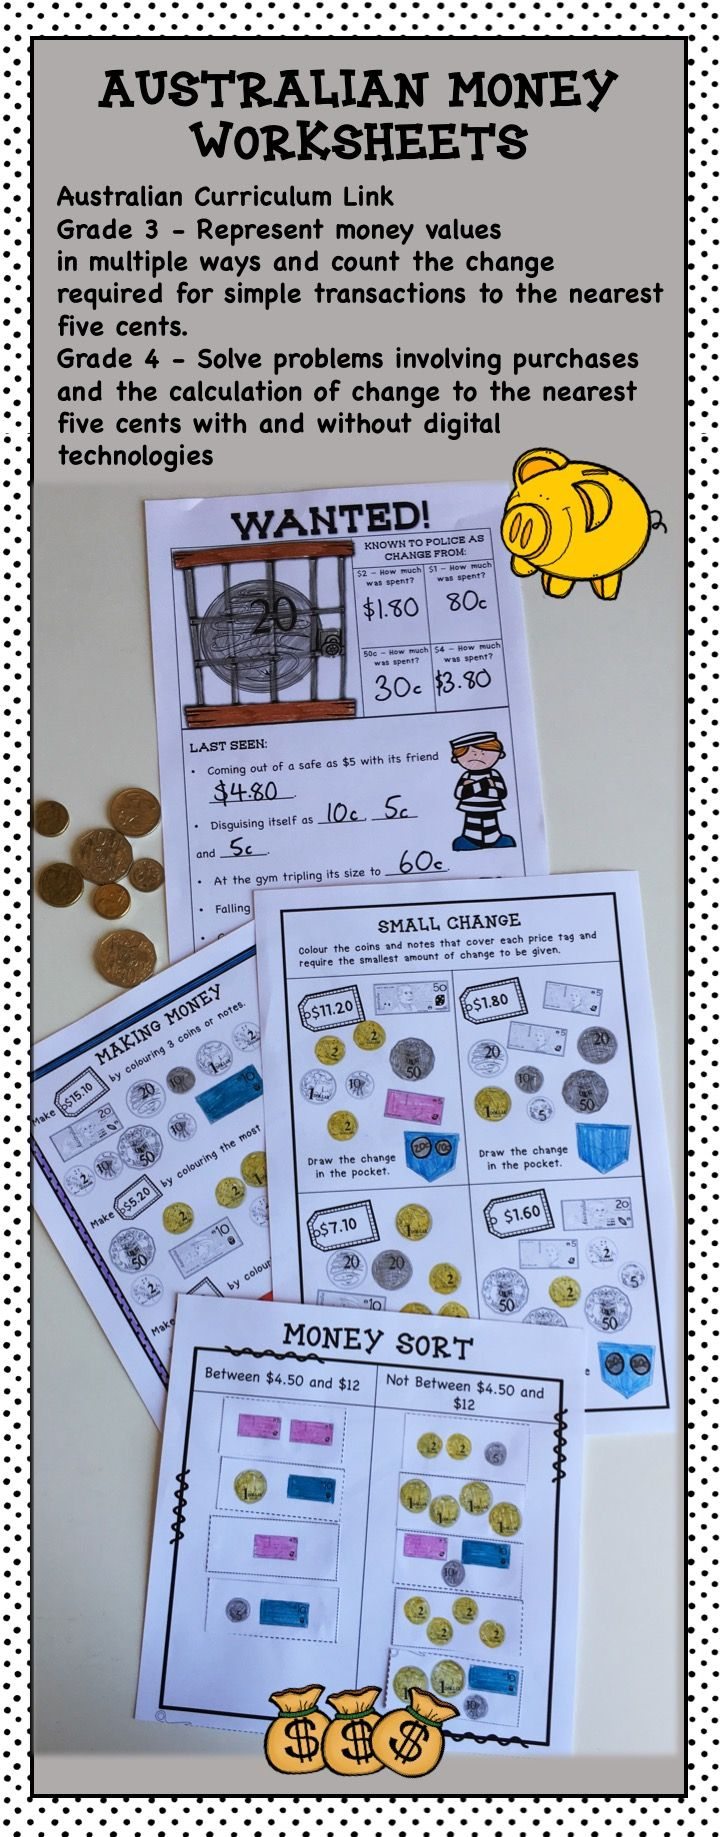 Workbooks k1 worksheets singapore : Best 25+ Year 4 maths worksheets ideas on Pinterest | Year 5 maths ...